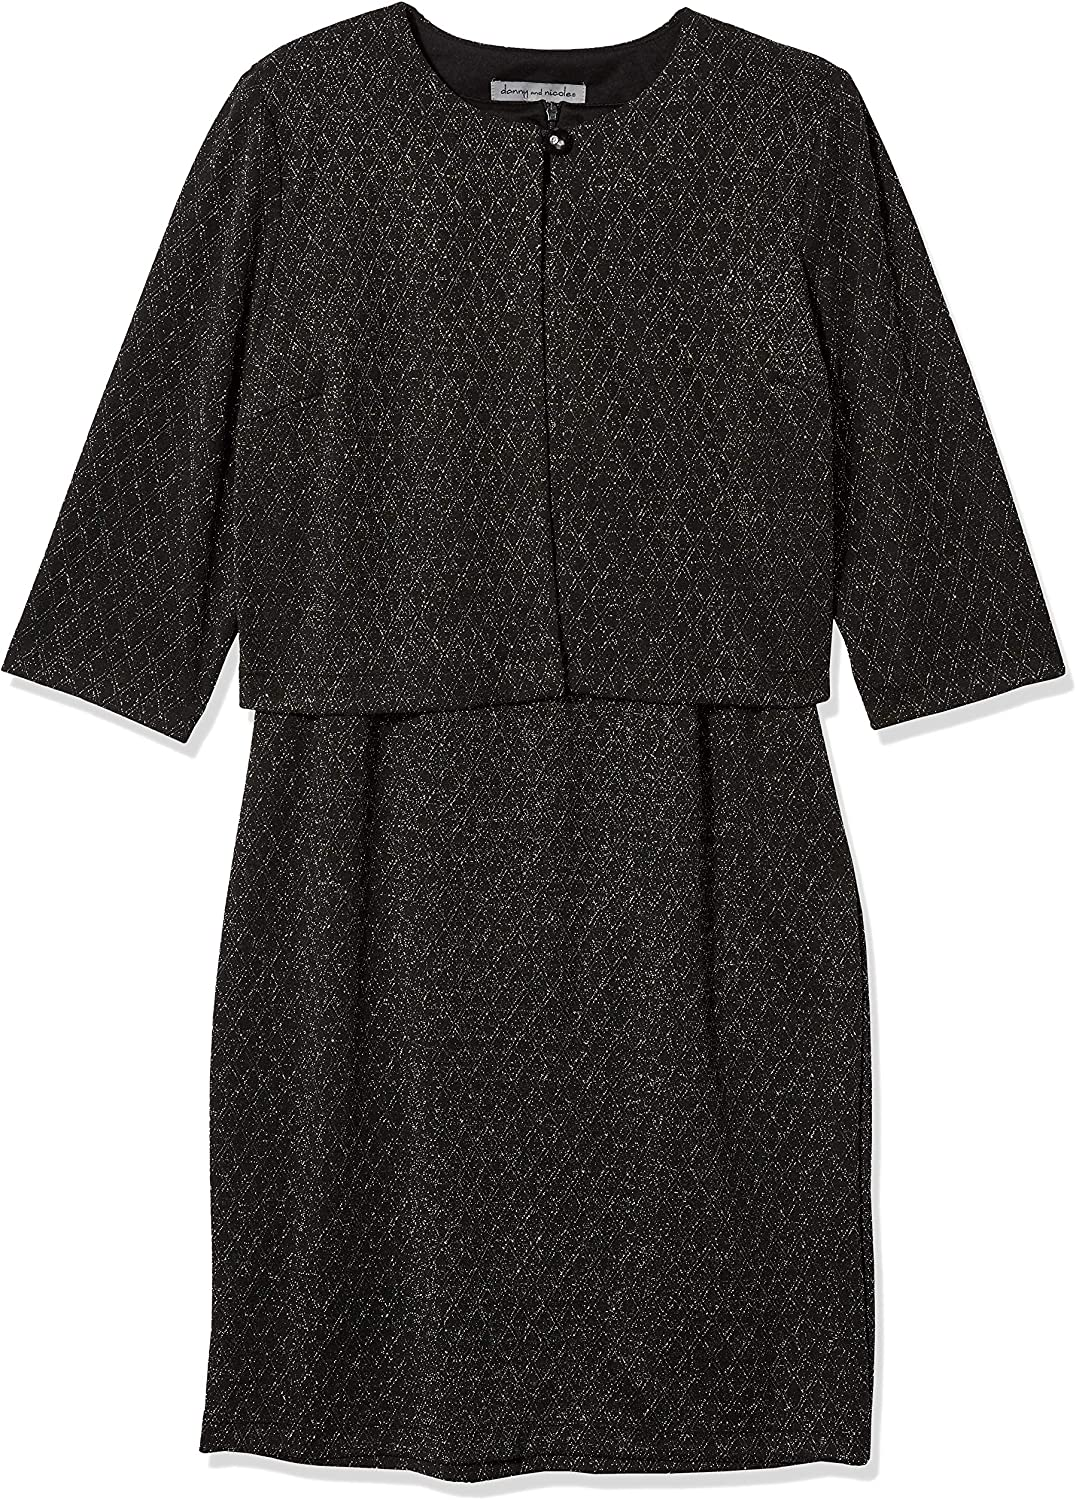 Danny and Nicole Women's Petite Two Piece 3/4 Sleeve Round Neck Jacket Dress